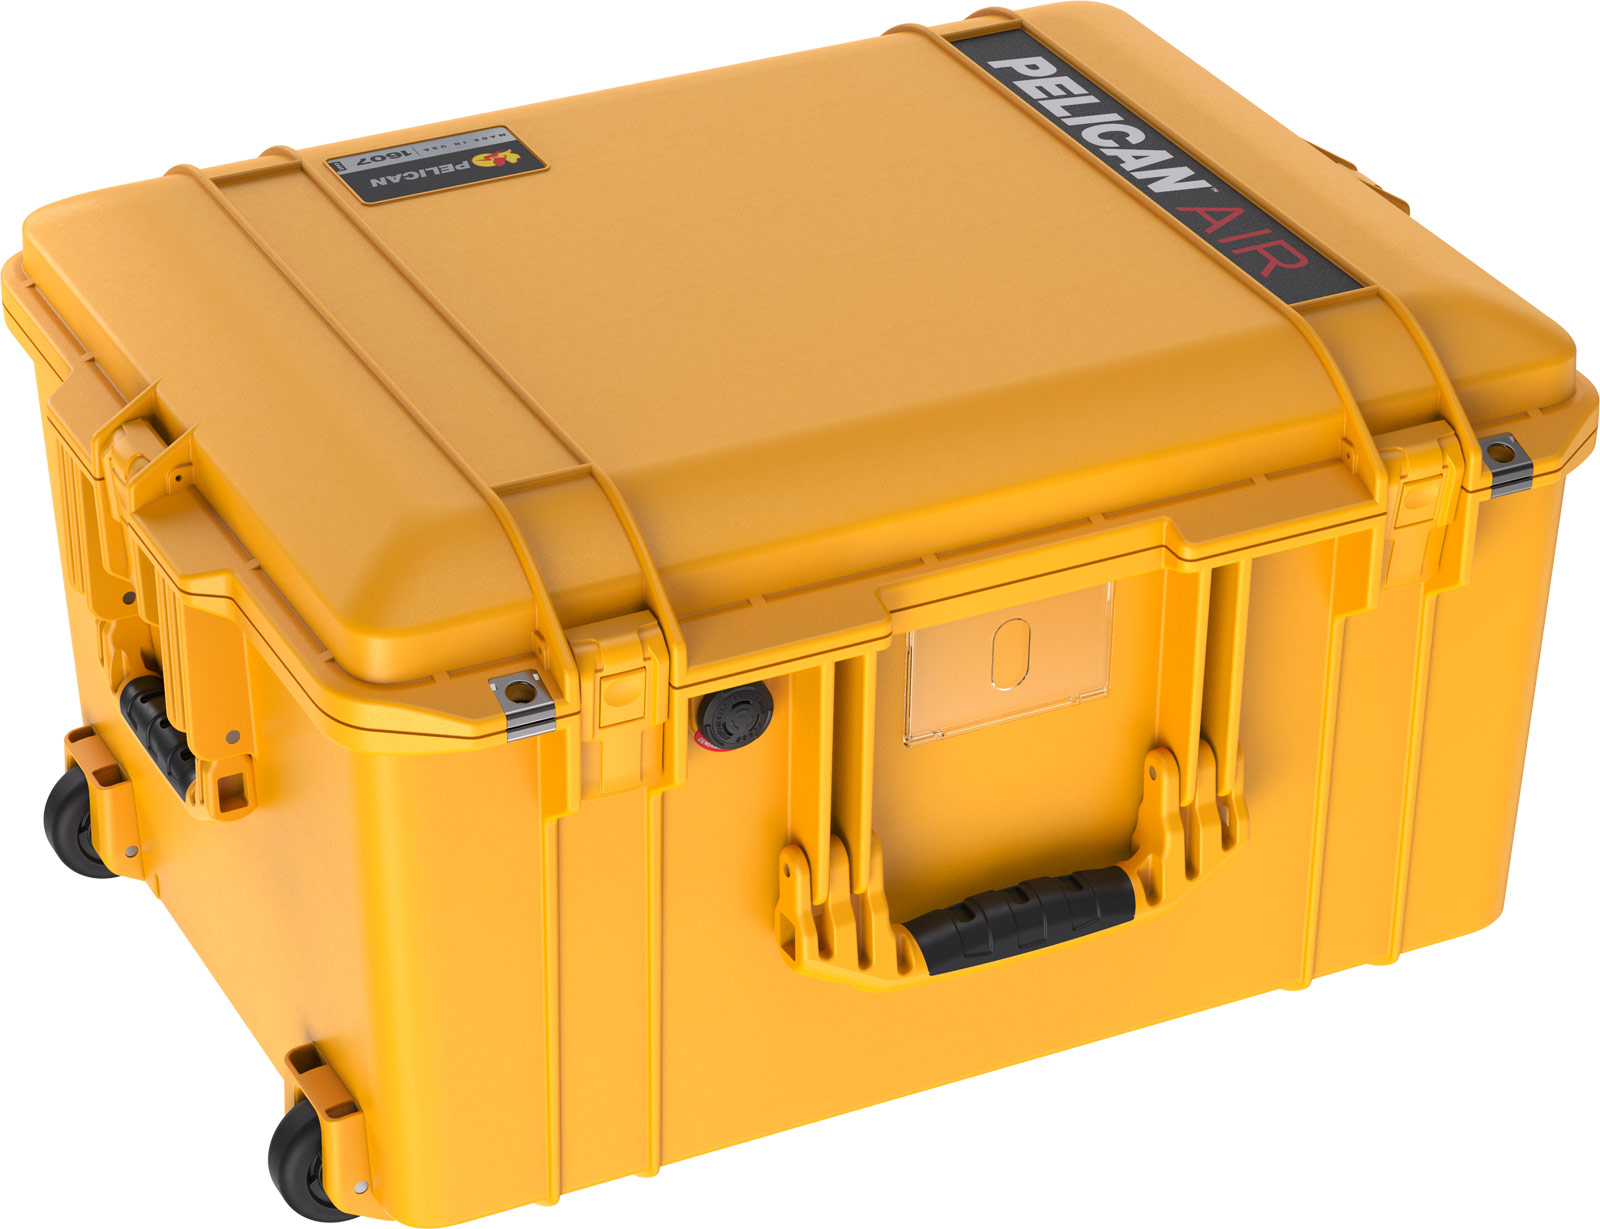 pelican 1607 air deep heavy duty yellow case